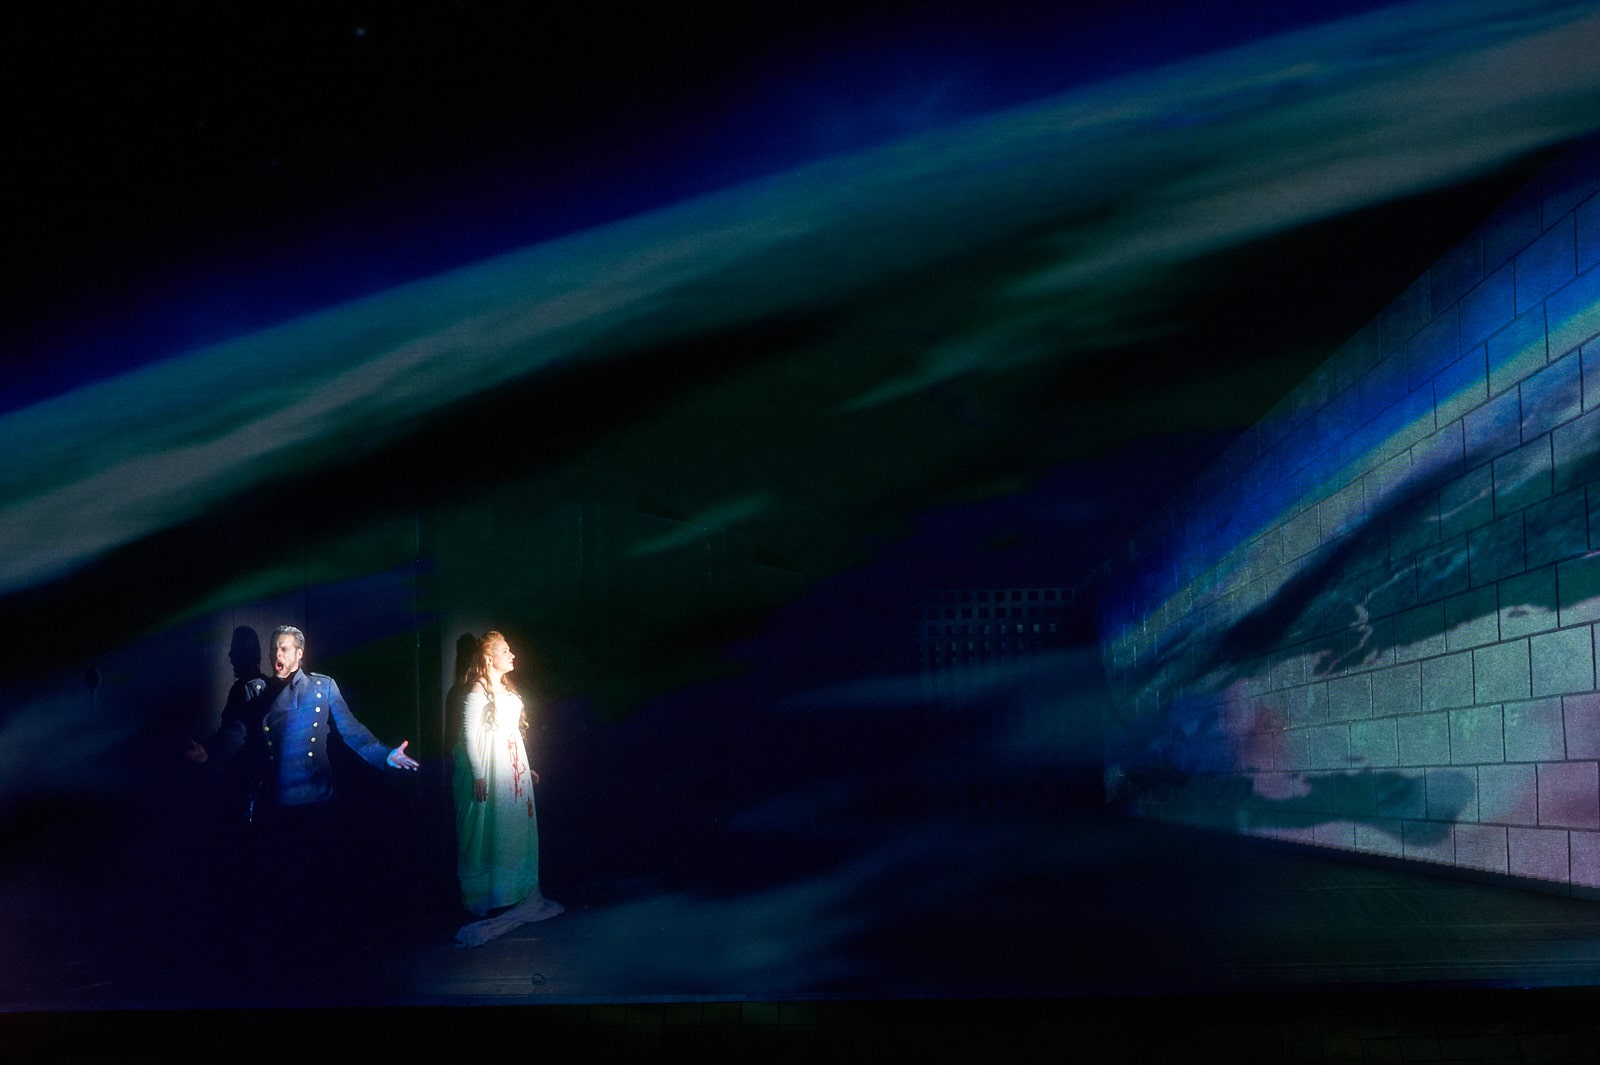 Man in blue uniform sings as bride in spotlight gazes at colourful view of earth from space.